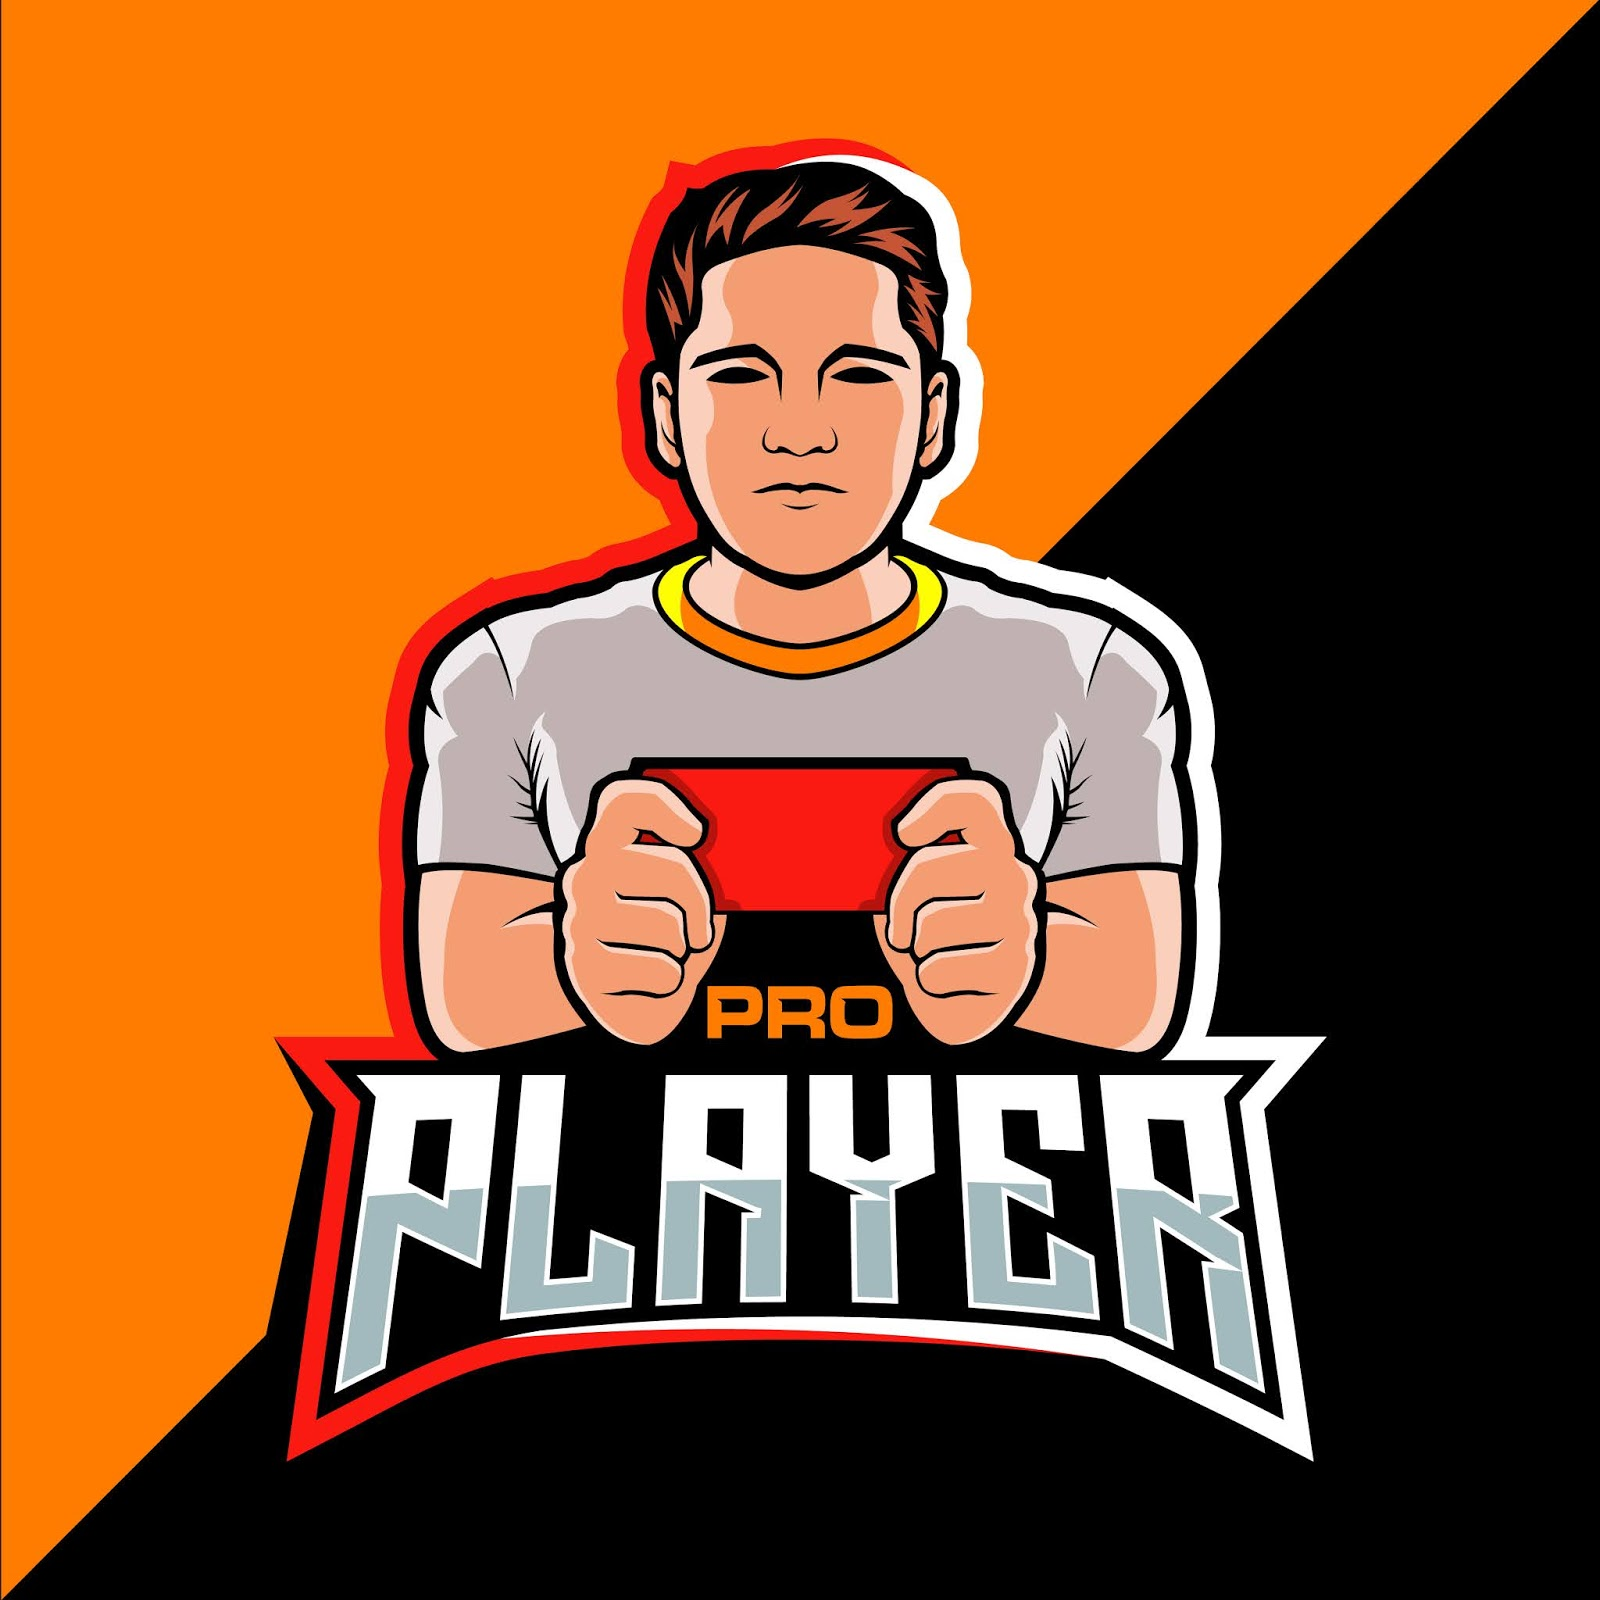 Pro Player Esport Free Download Vector CDR, AI, EPS and PNG Formats